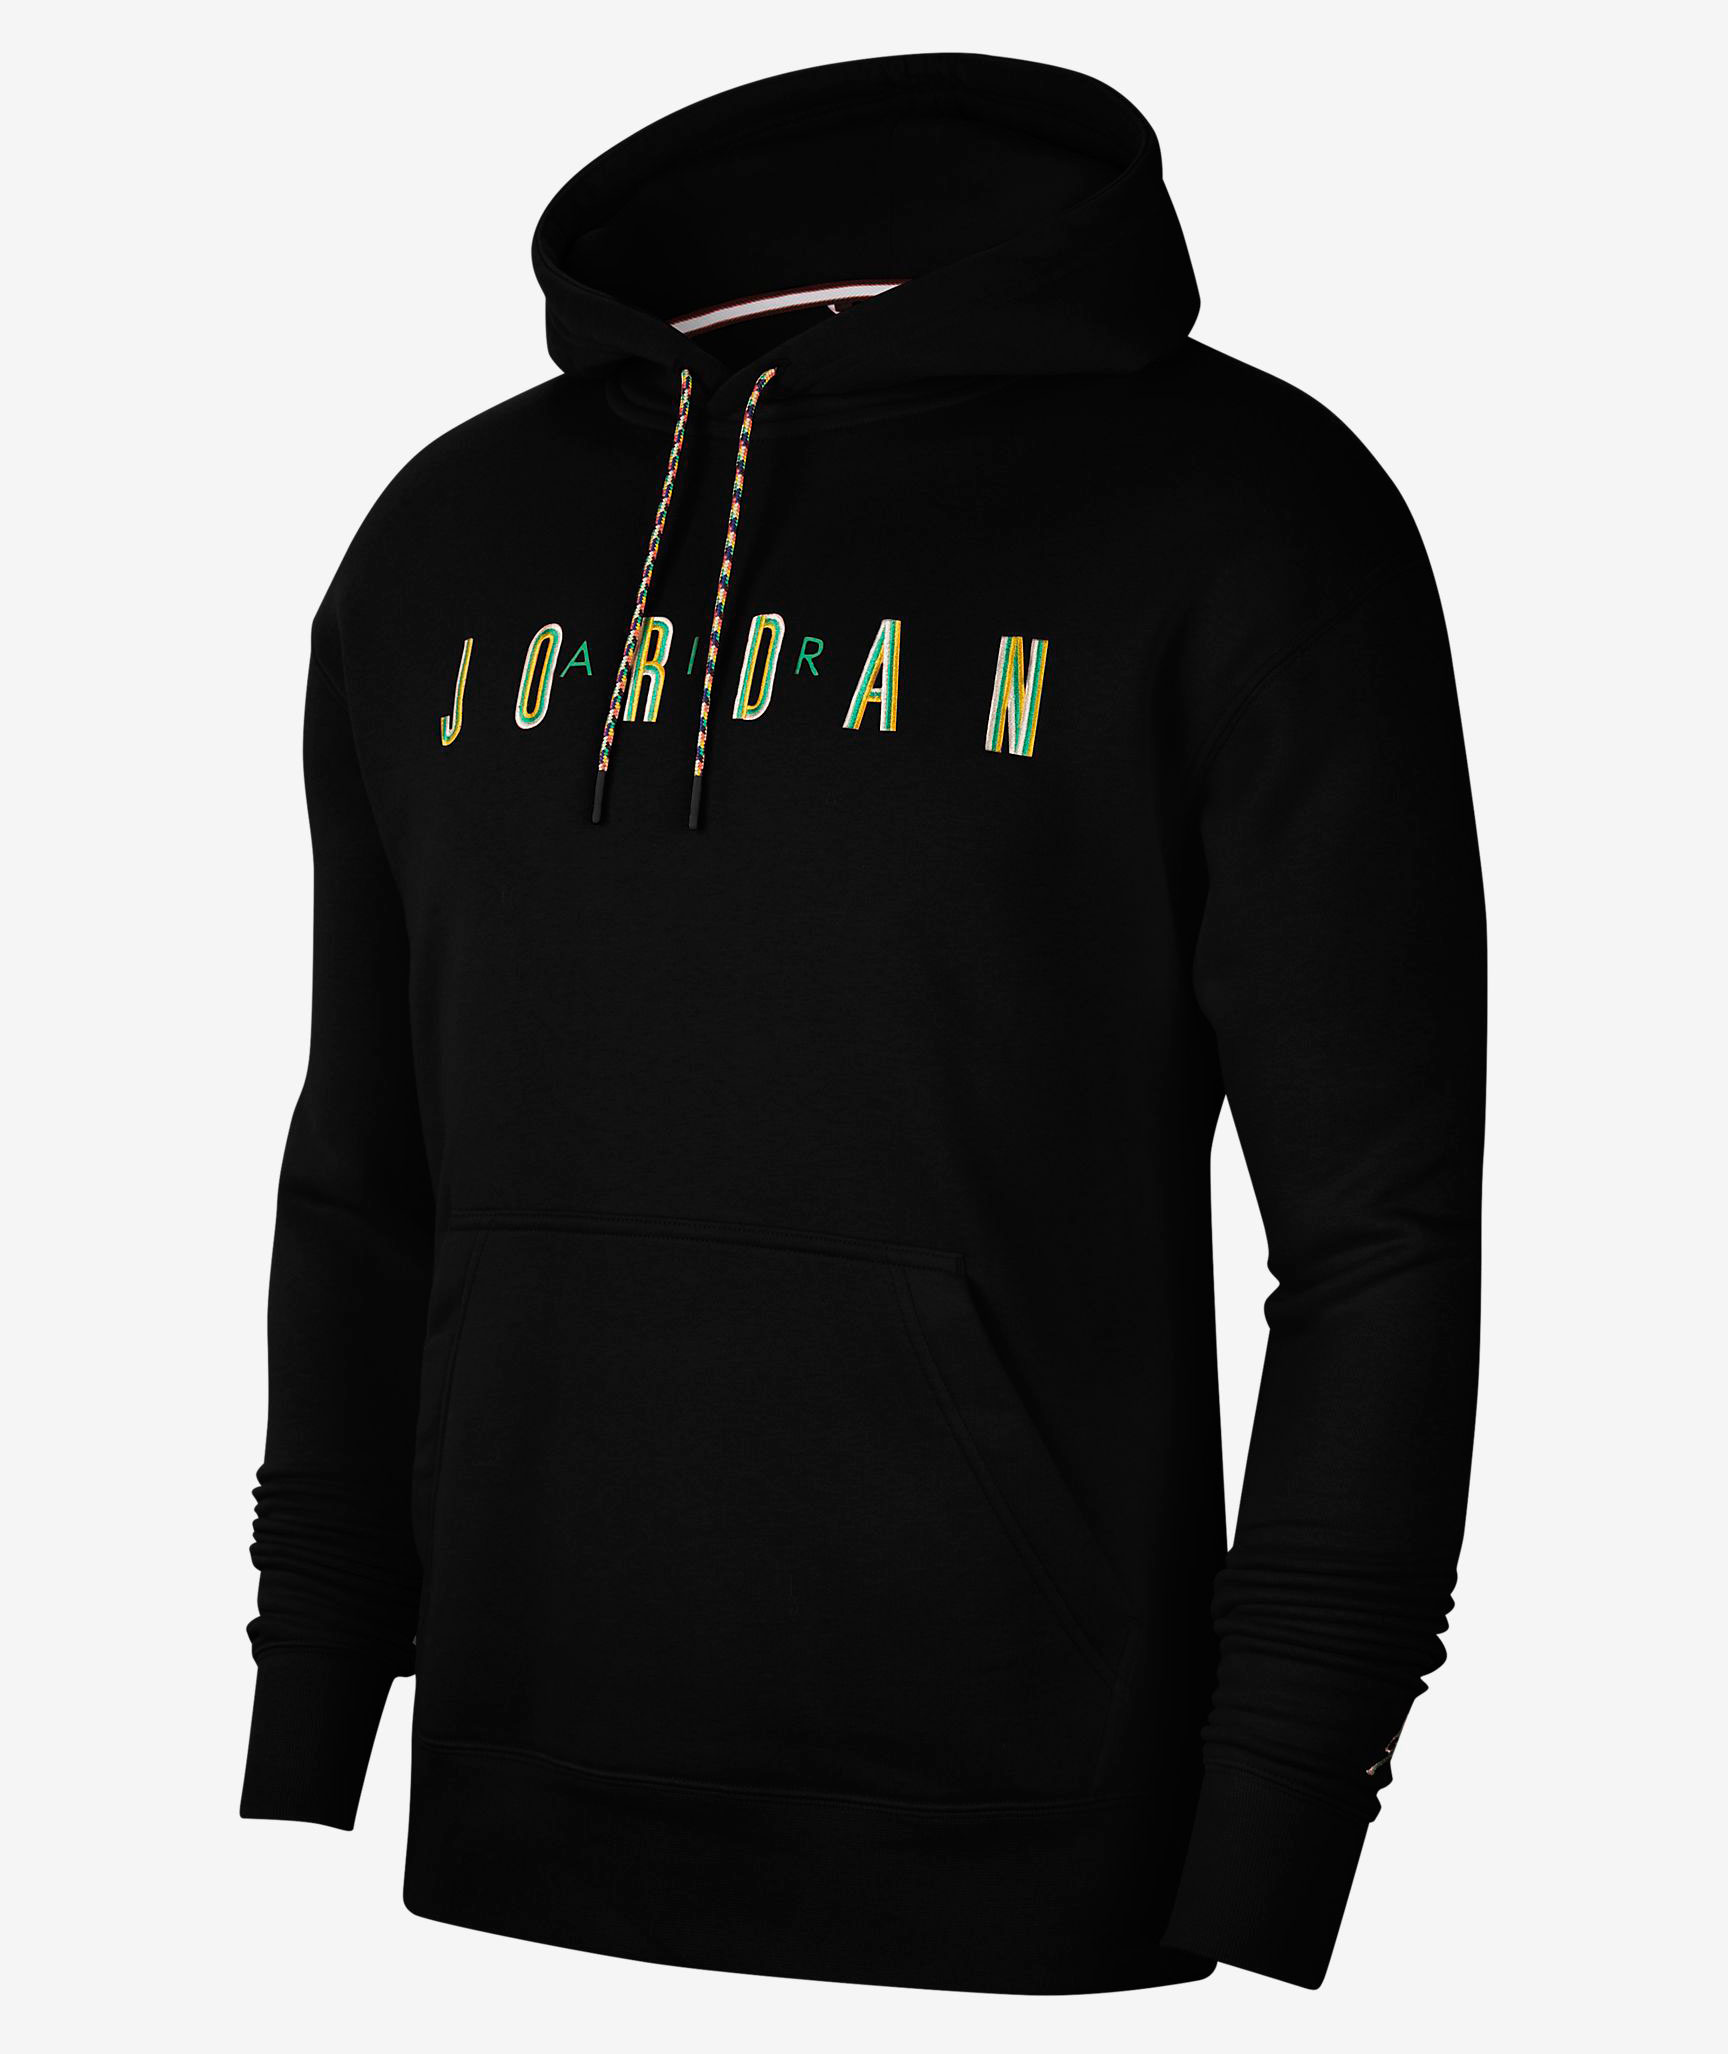 jordan-3-animal-instinct-2-matching-hoodie